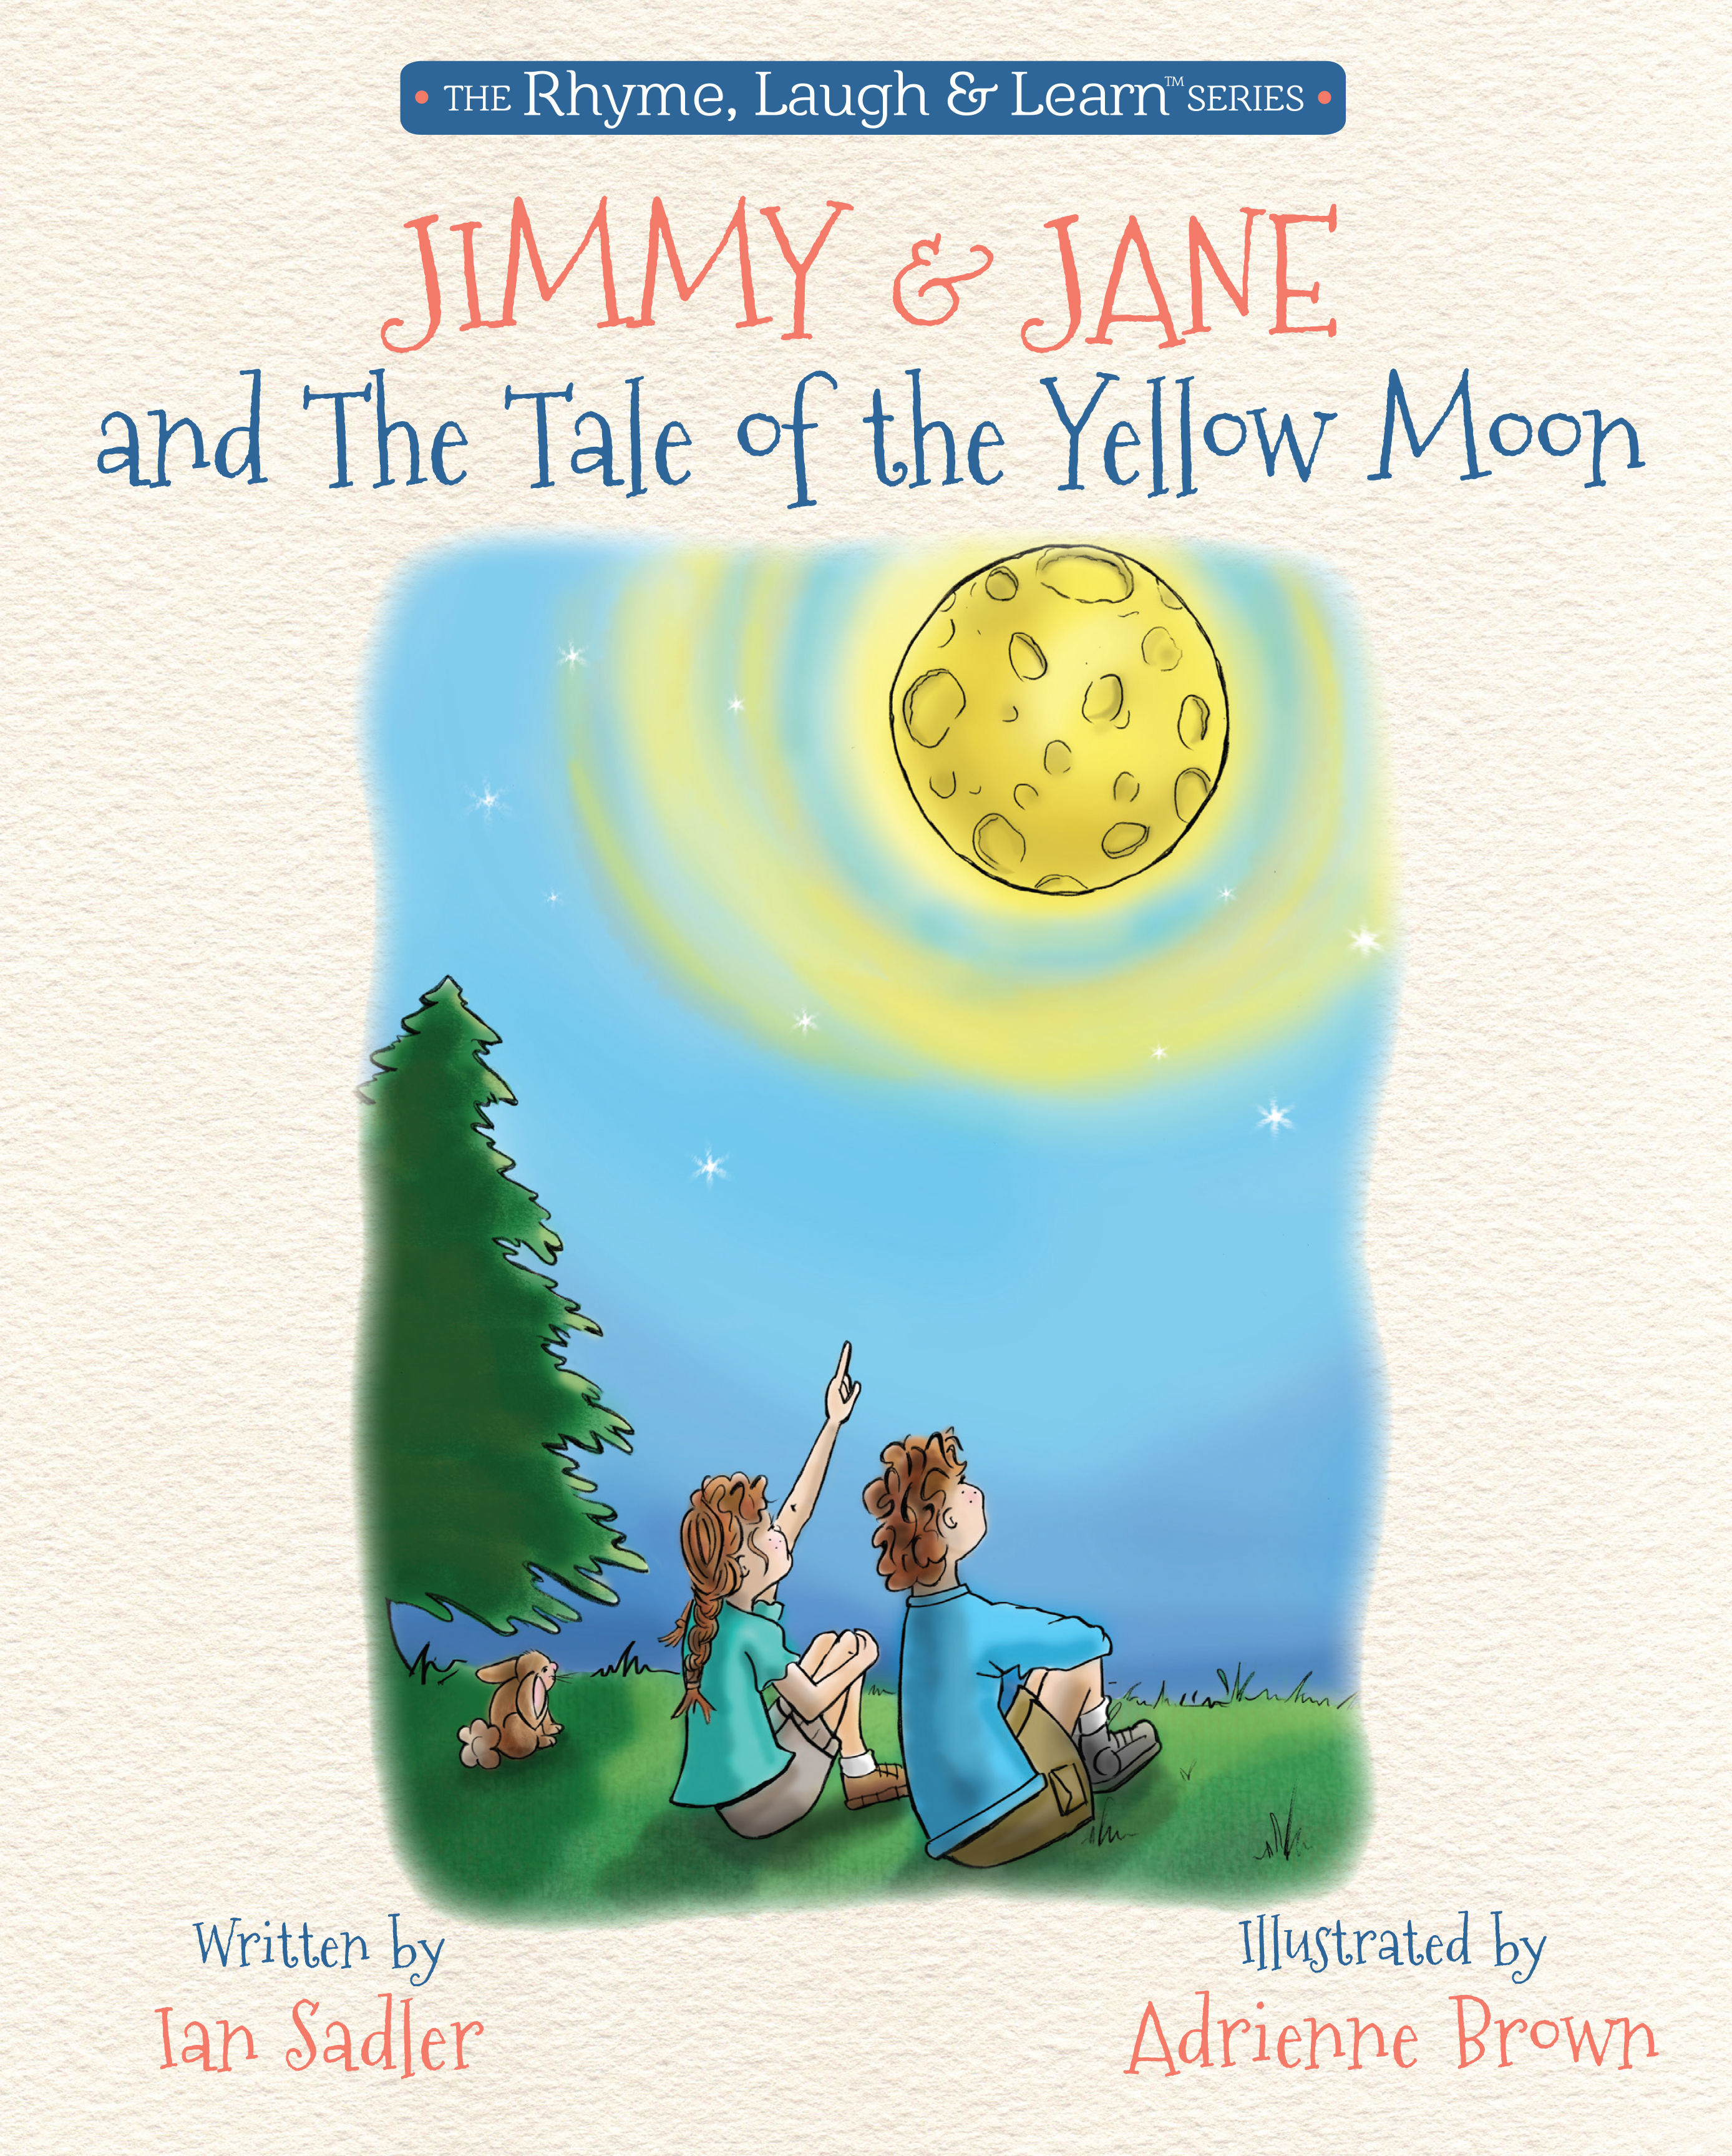 Jimmy & Jane and the Tale of the Yellow Moon